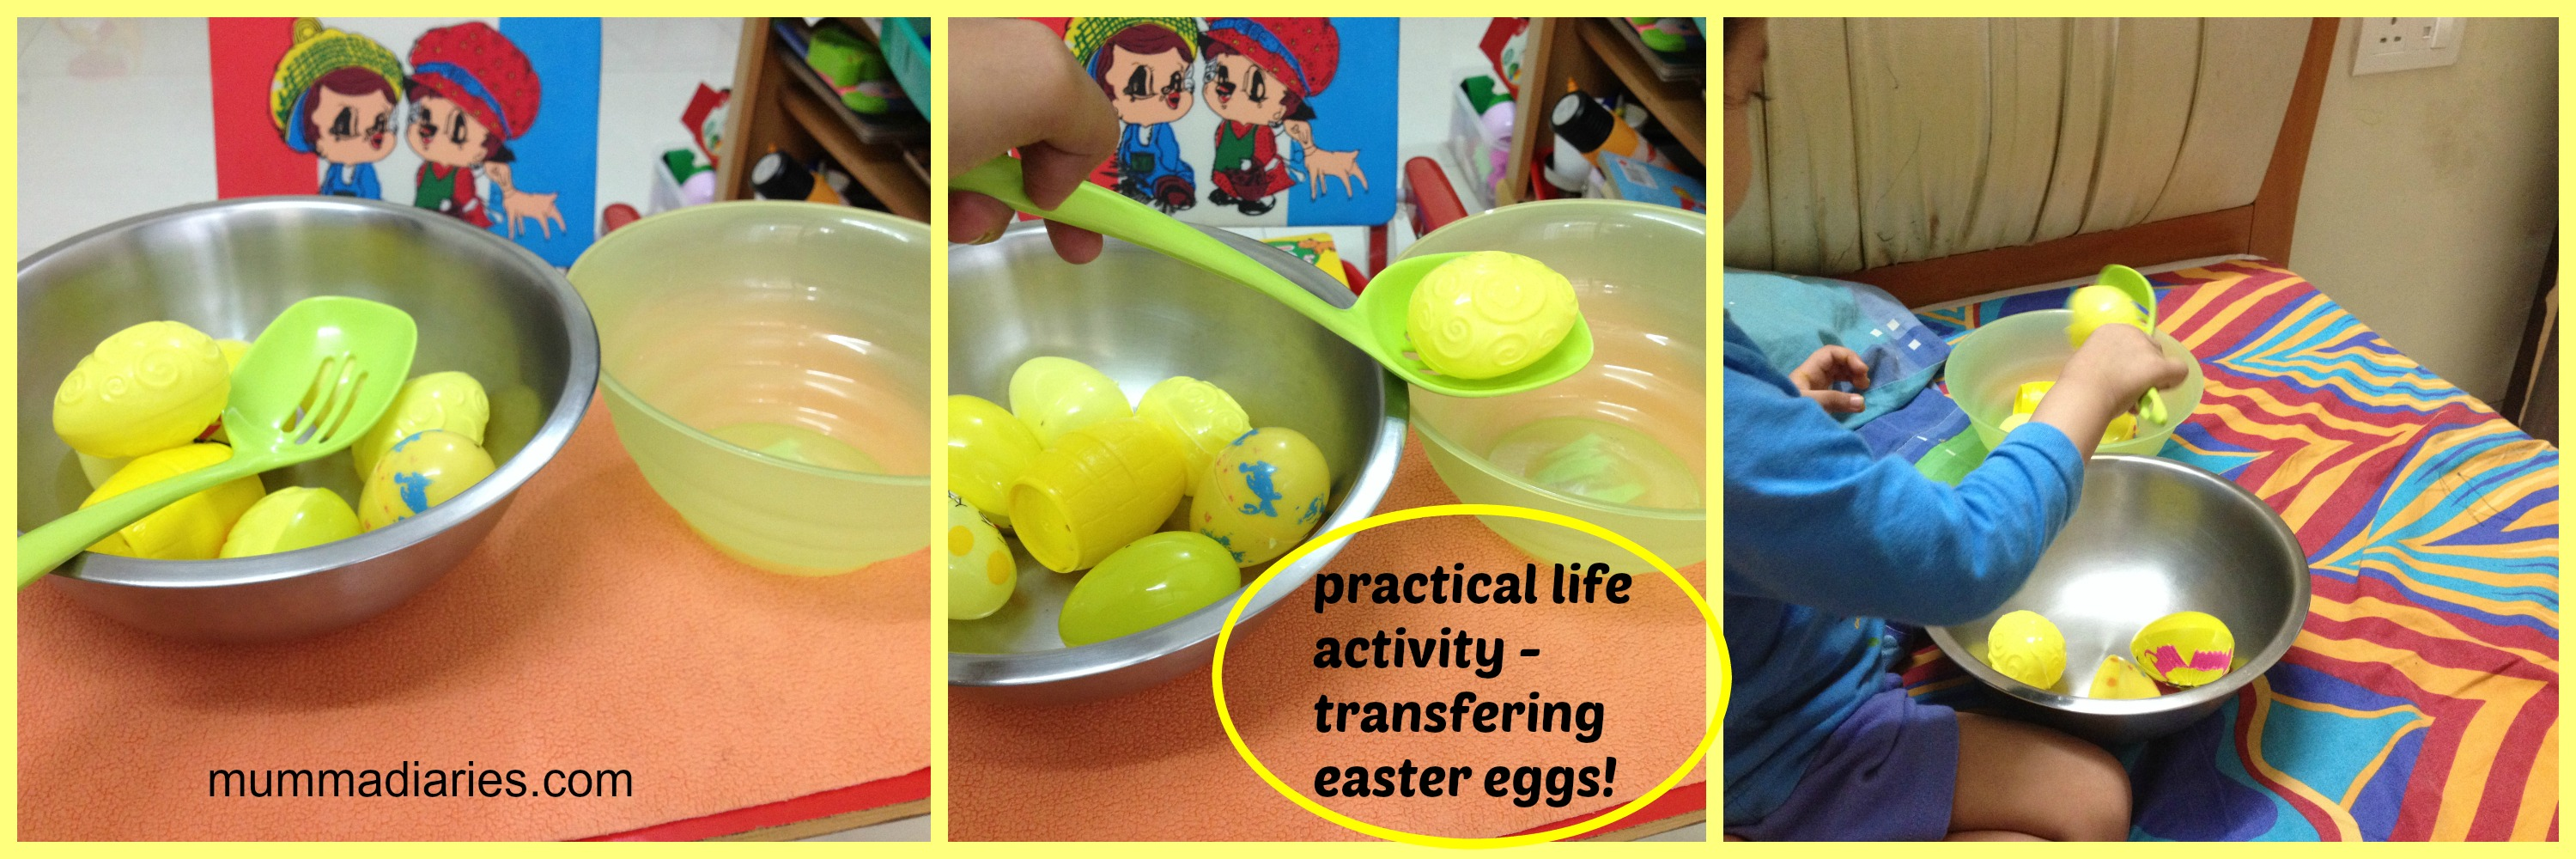 Activities for colors for toddlers - Activity 2 Object Matching I Created An All Things Yellow Sheet I Color Printed And Laminated It He Had Super Fun Matching Each Of The Objects